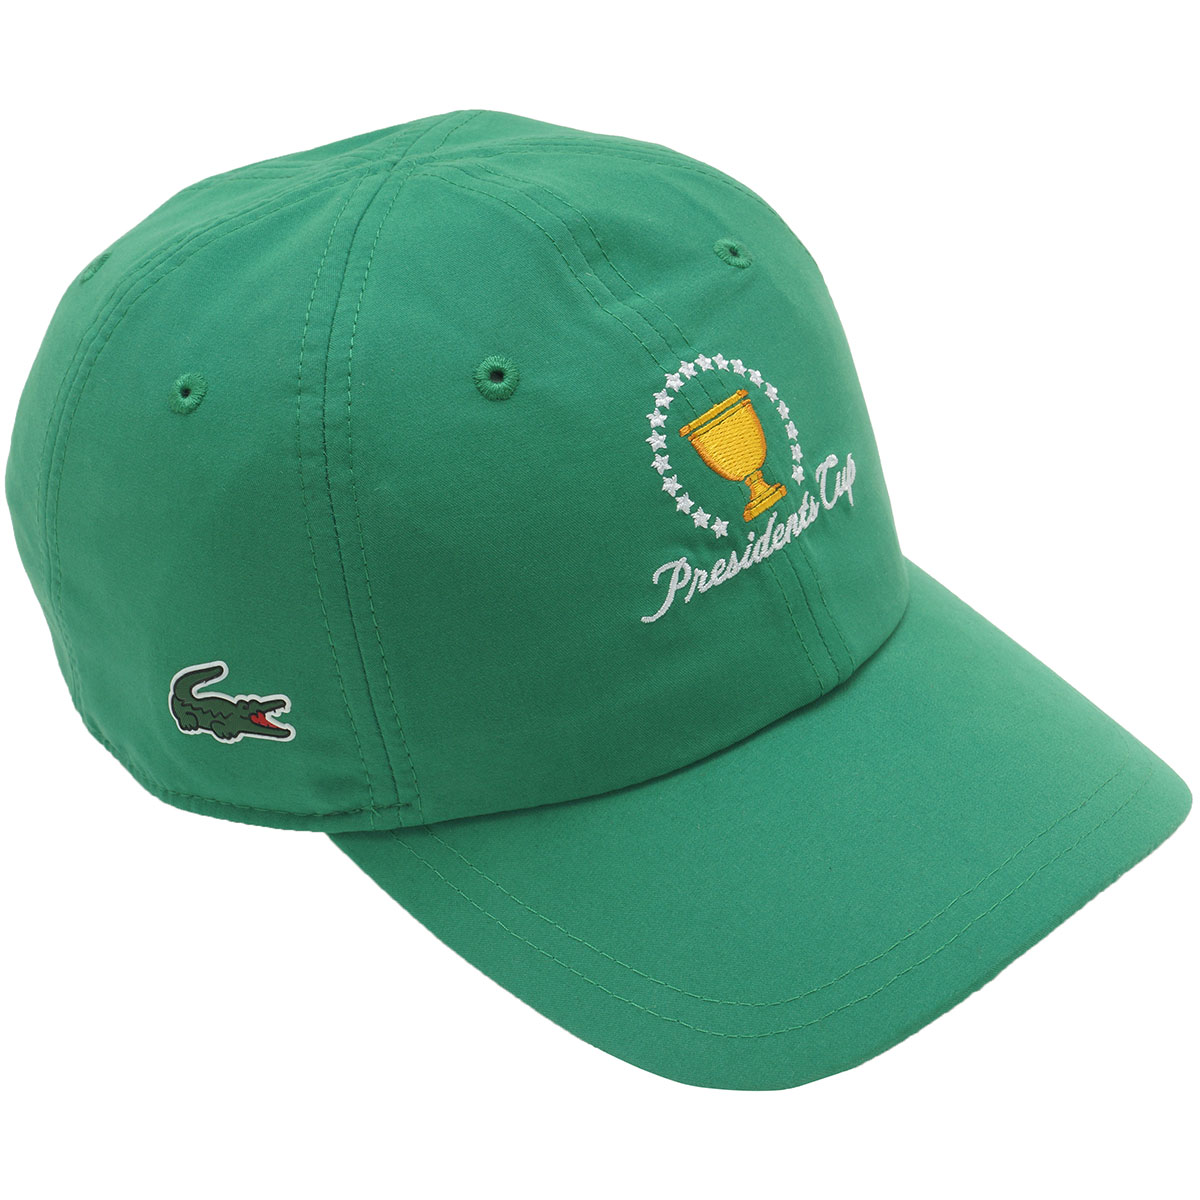 PRESIDENTS CUP 6パネルキャップ